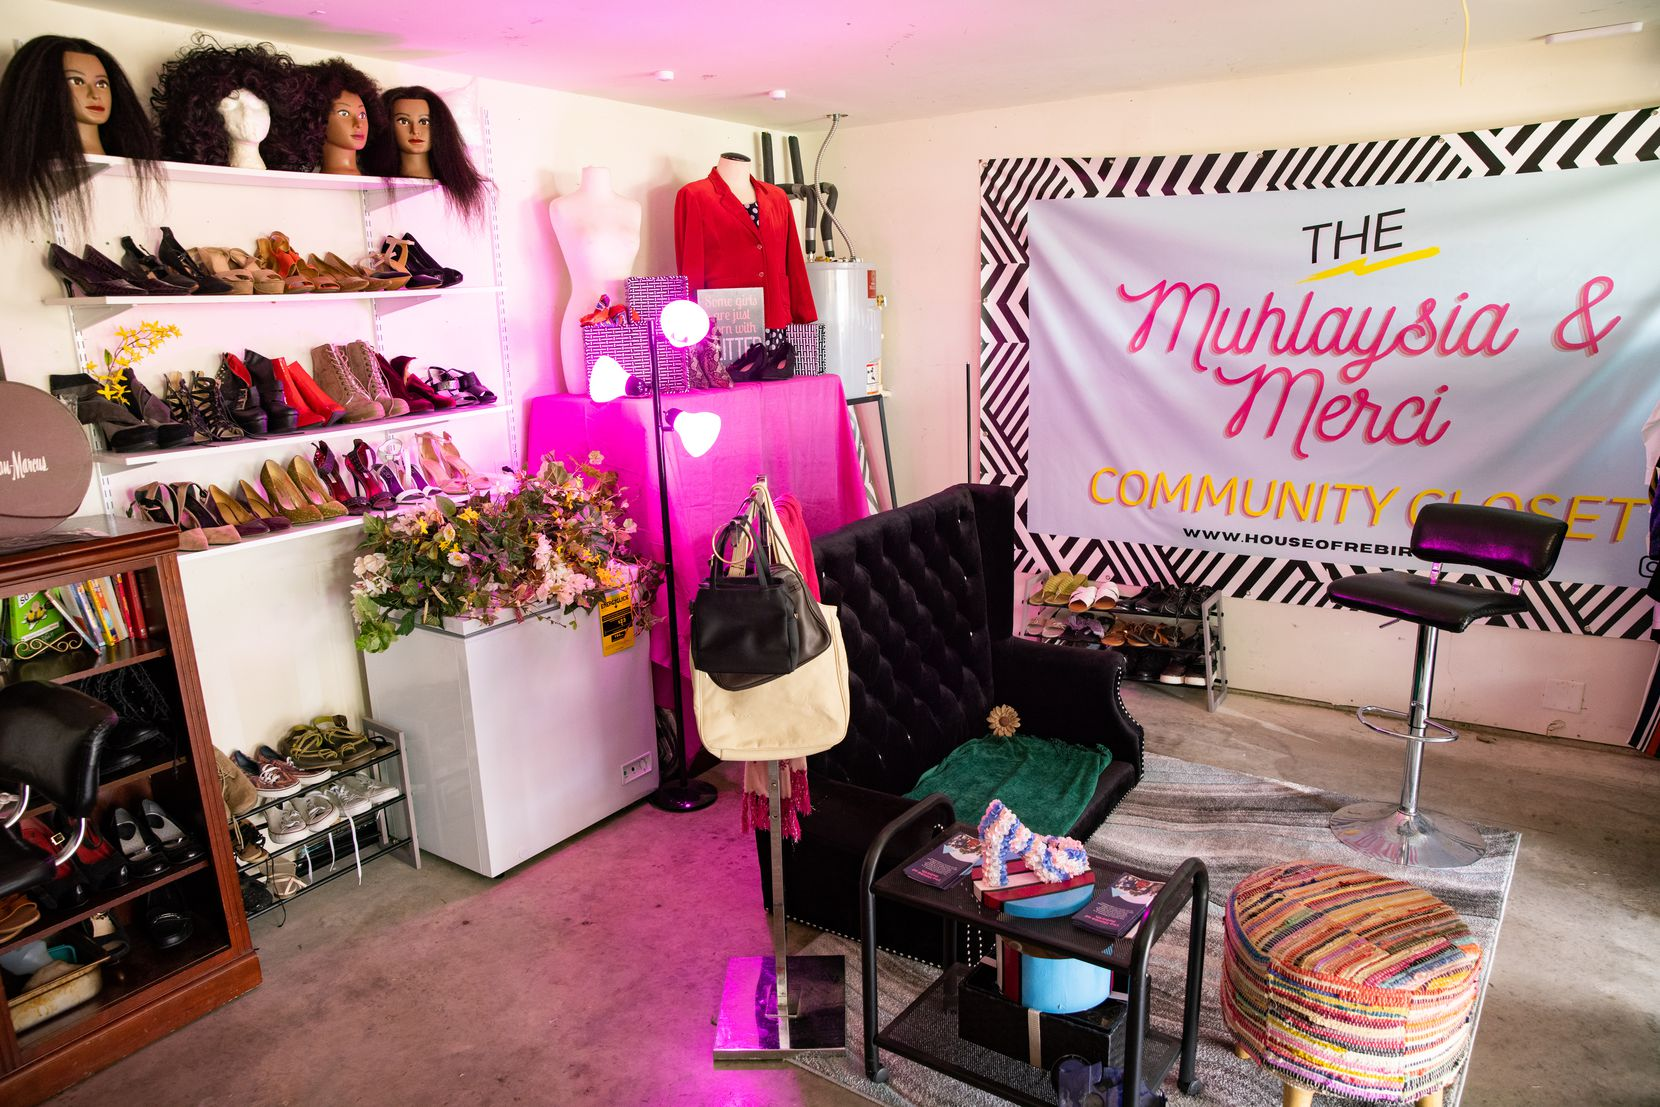 The Muhlaysia and Merci's Community Closet located in the garage of the House of Rebirth in Dallas on Tuesday, April 6, 2021. House of Rebirth is a housing option and community for Black trans women established in 2019 following the deaths of Muhlaysia Booker and Chynal Lindsey. (Juan Figueroa/ The Dallas Morning News)